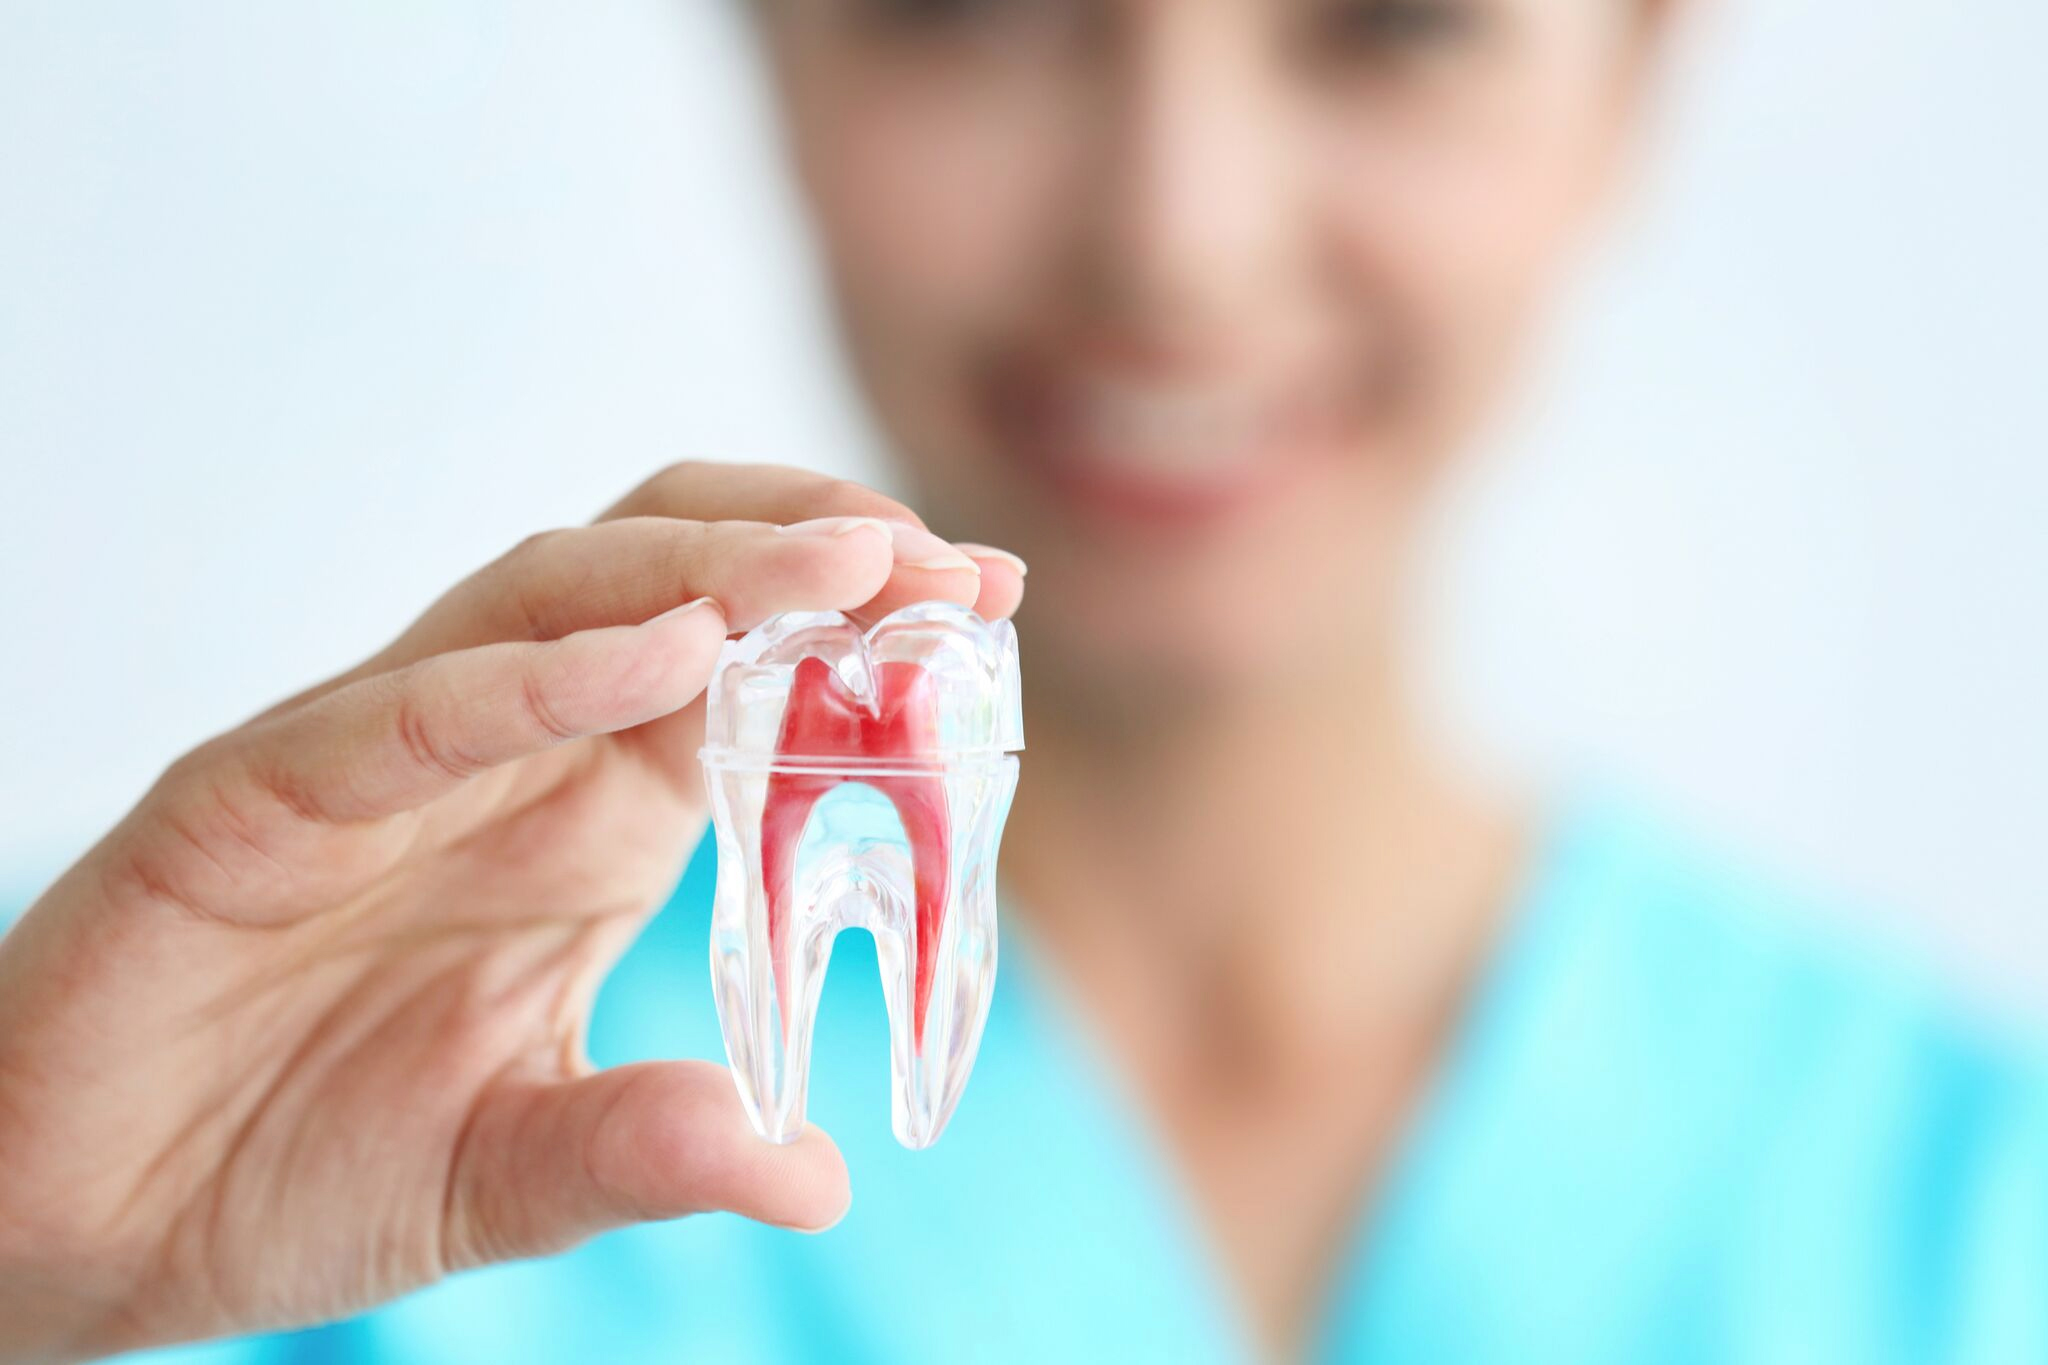 Why Choose Root Canal Treatment Over Other Alternatives?